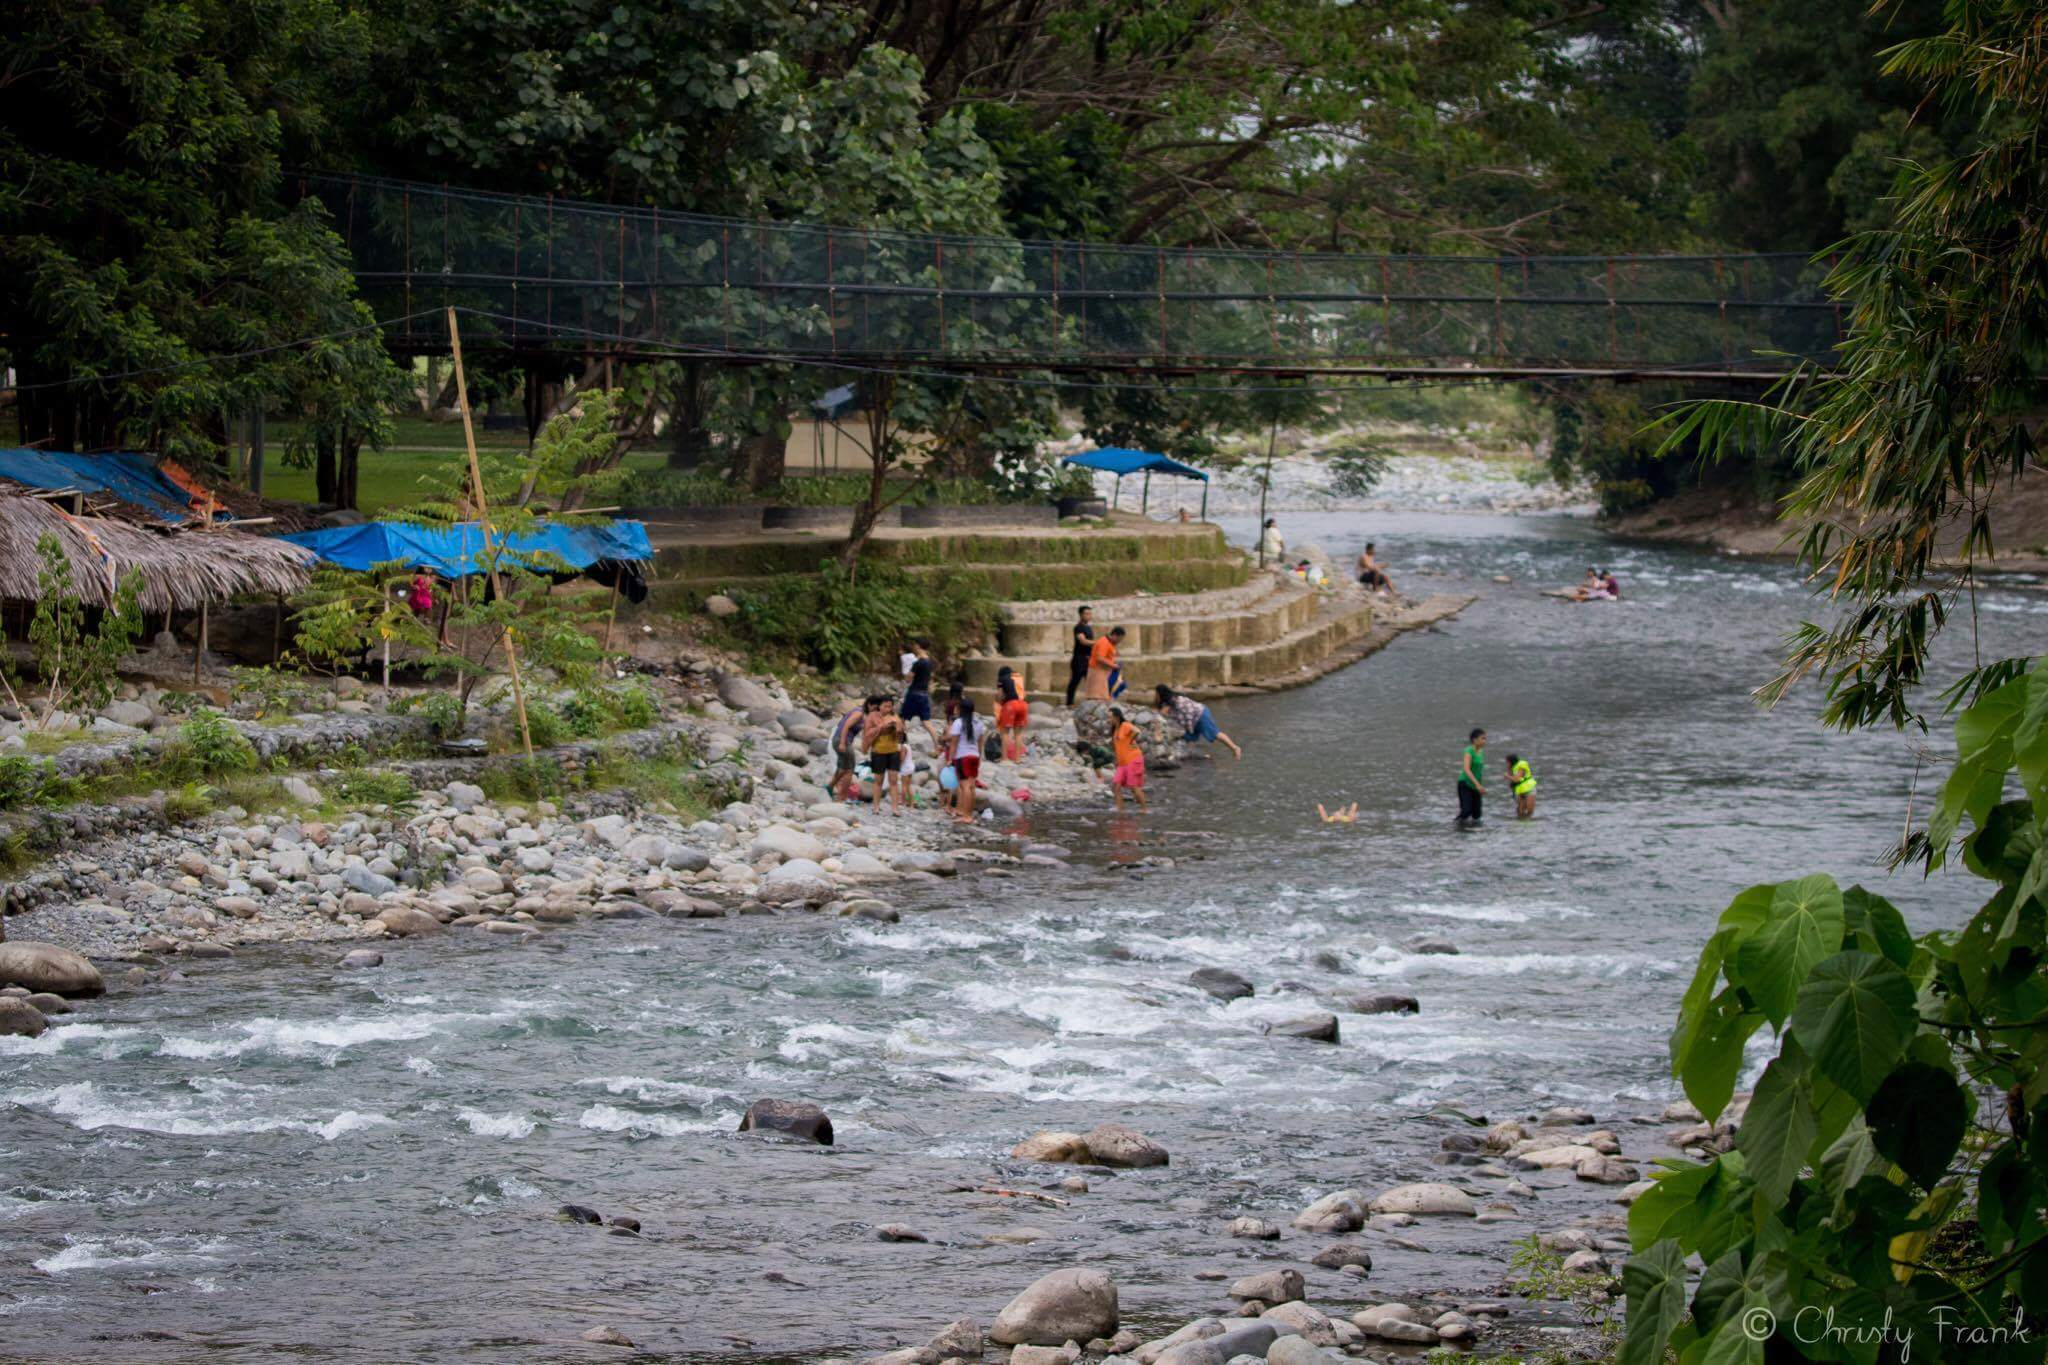 BUKIT LAWANG: From Rehabilitation Centre to Ecotourism